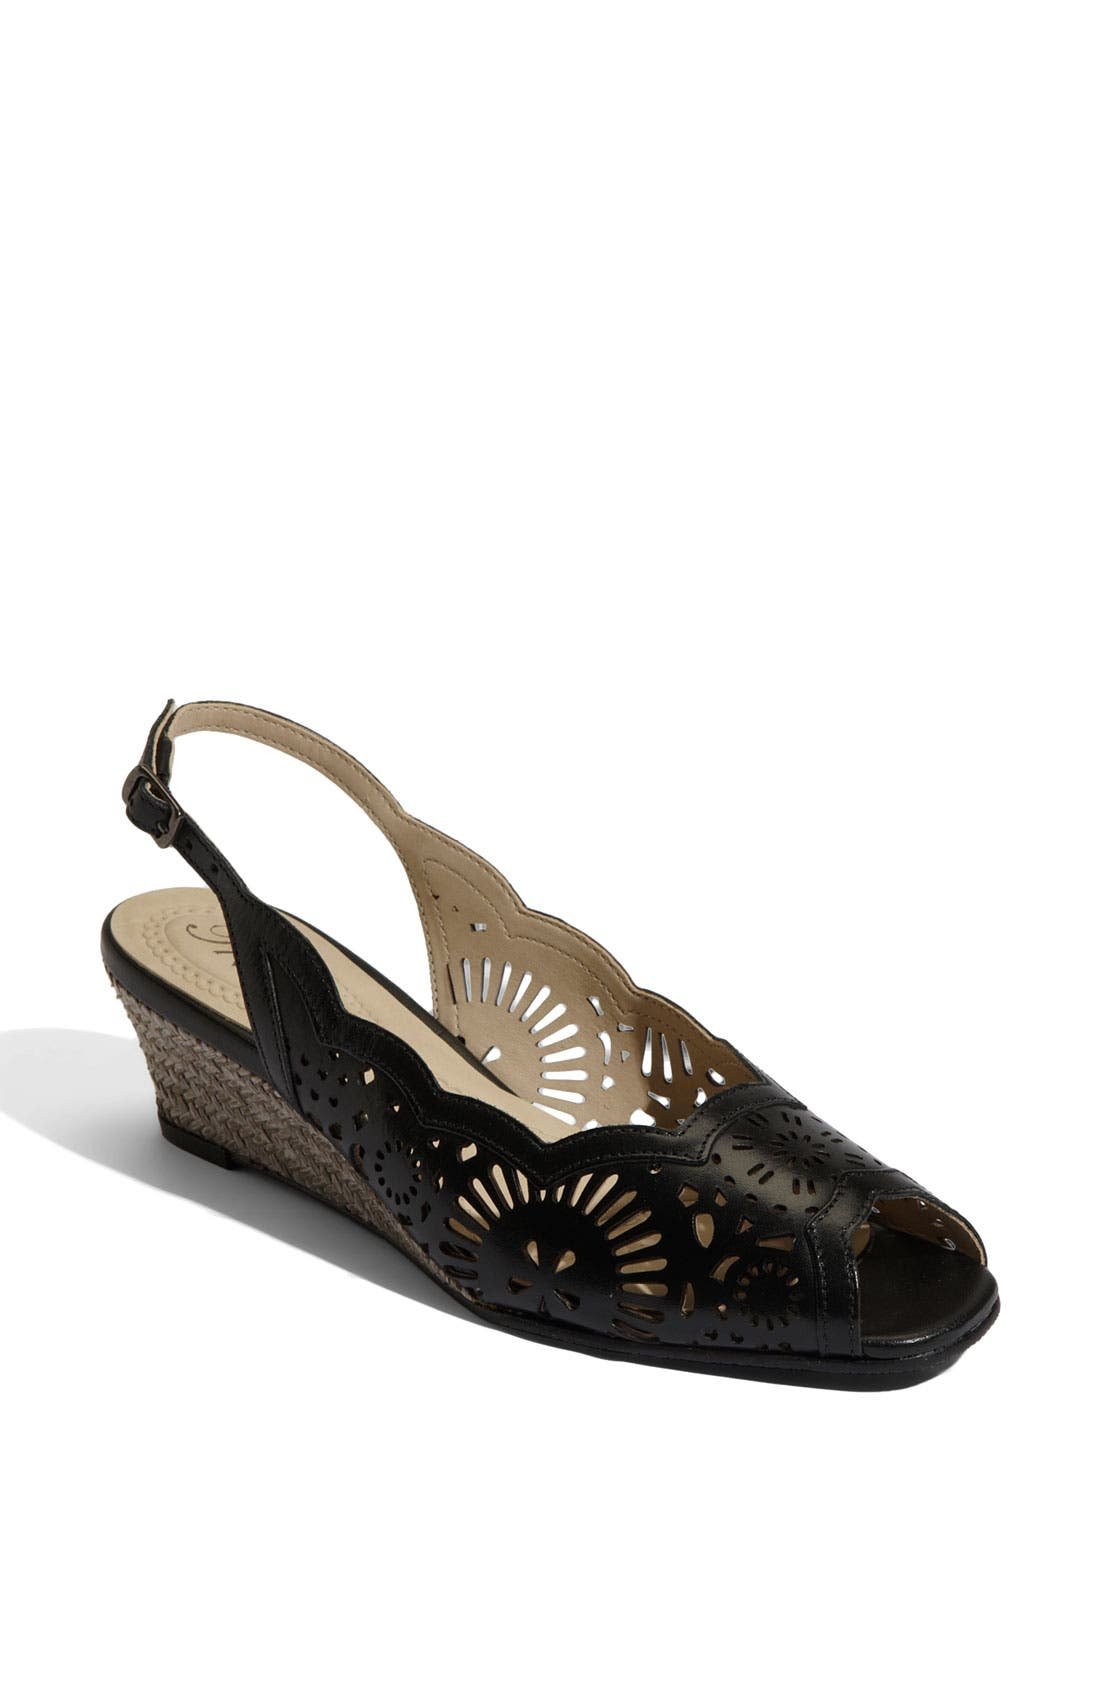 Alternate Image 1 Selected - Trotters 'Melanie' Slingback